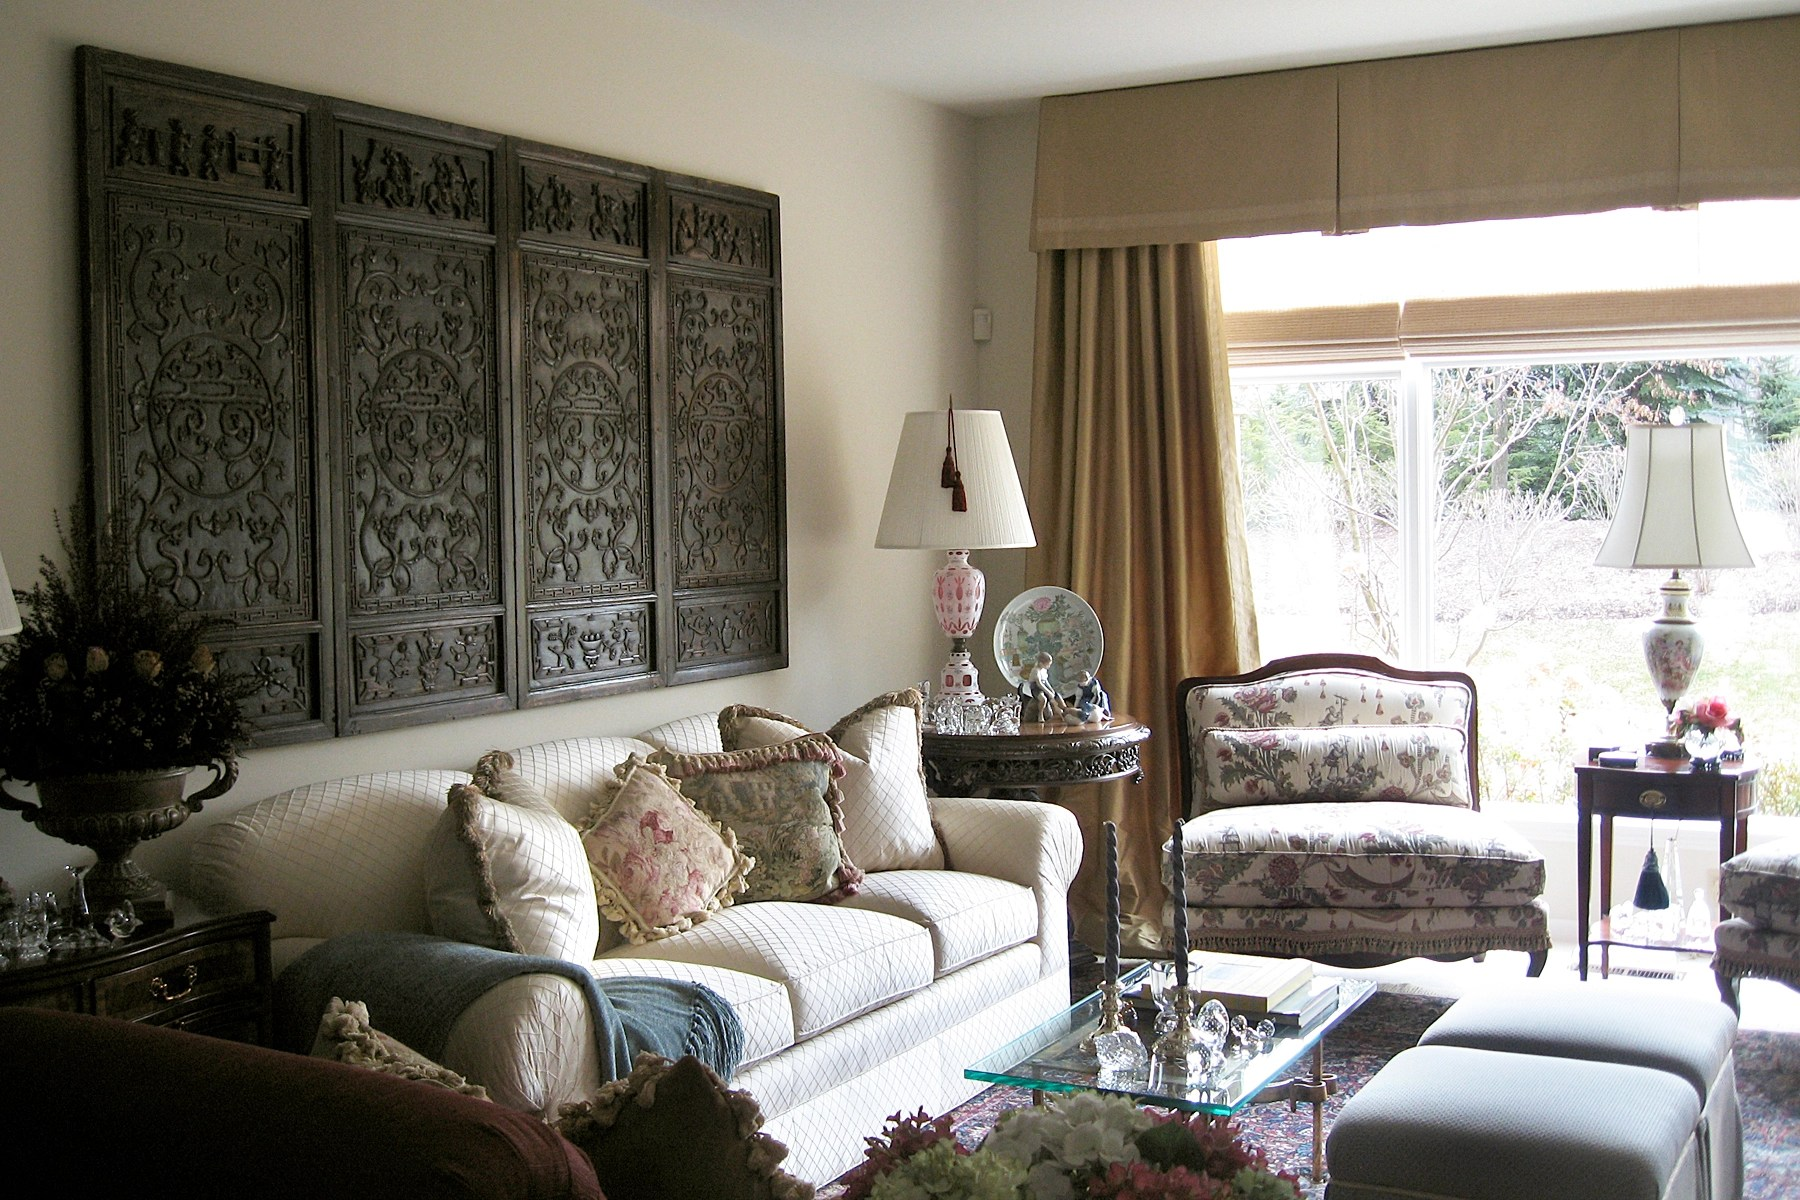 33 Traditional Living Room Design - The WoW Style on Living Room Decor  id=18186